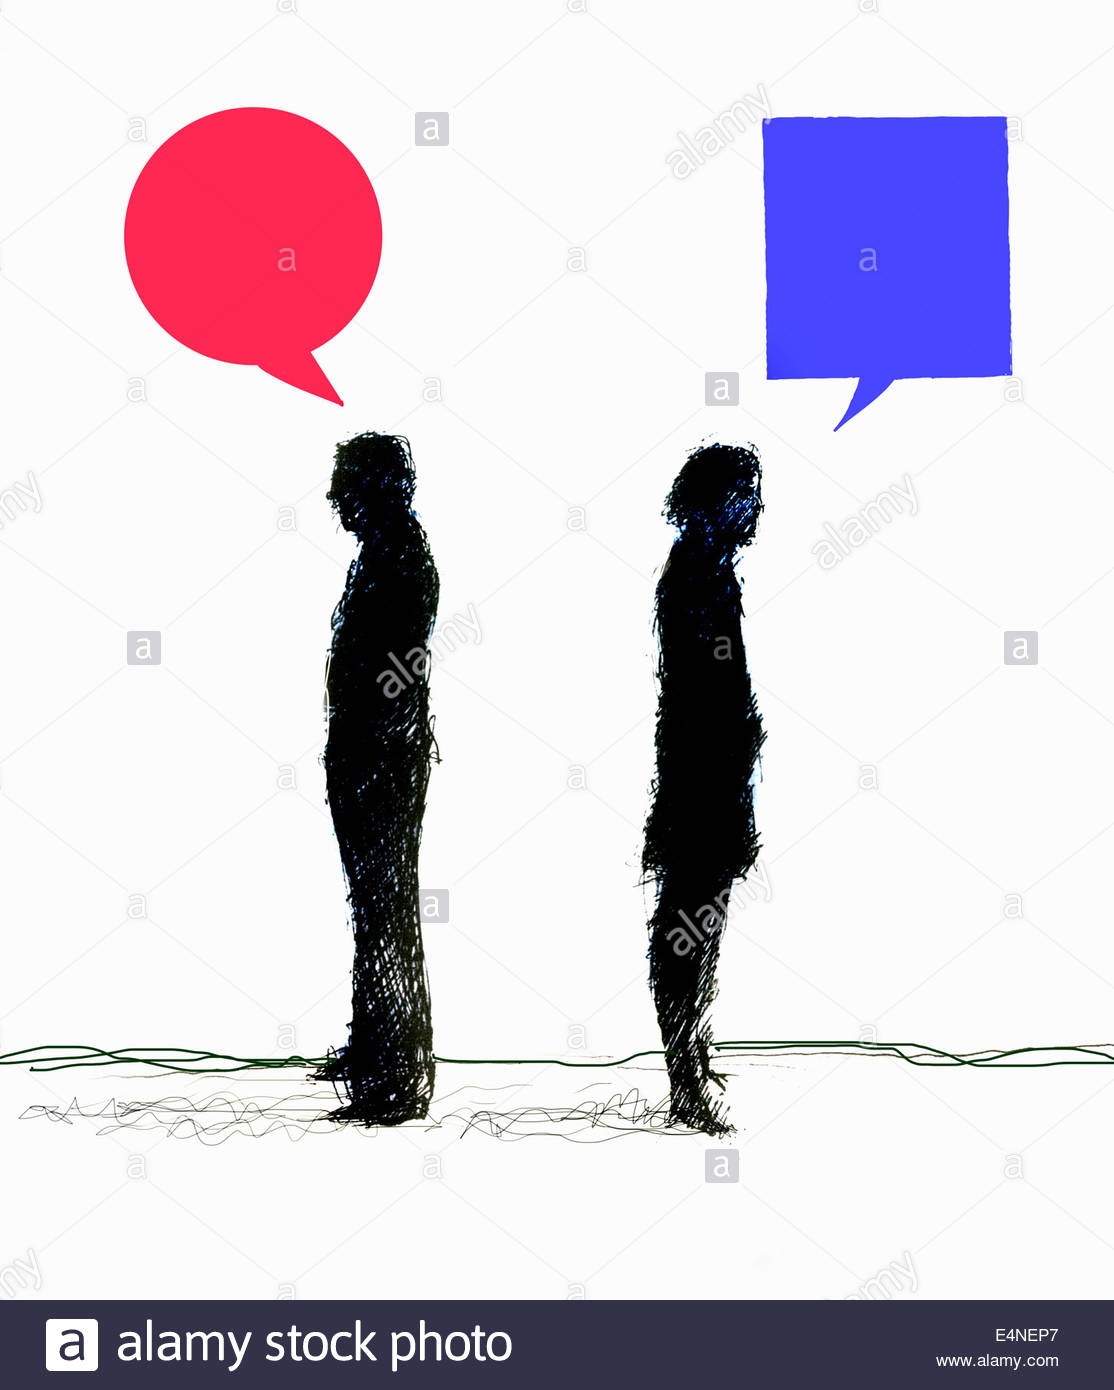 Opposed businessman and businesswoman standing back to back communicating with contrasting speech bubbles - Stock Image